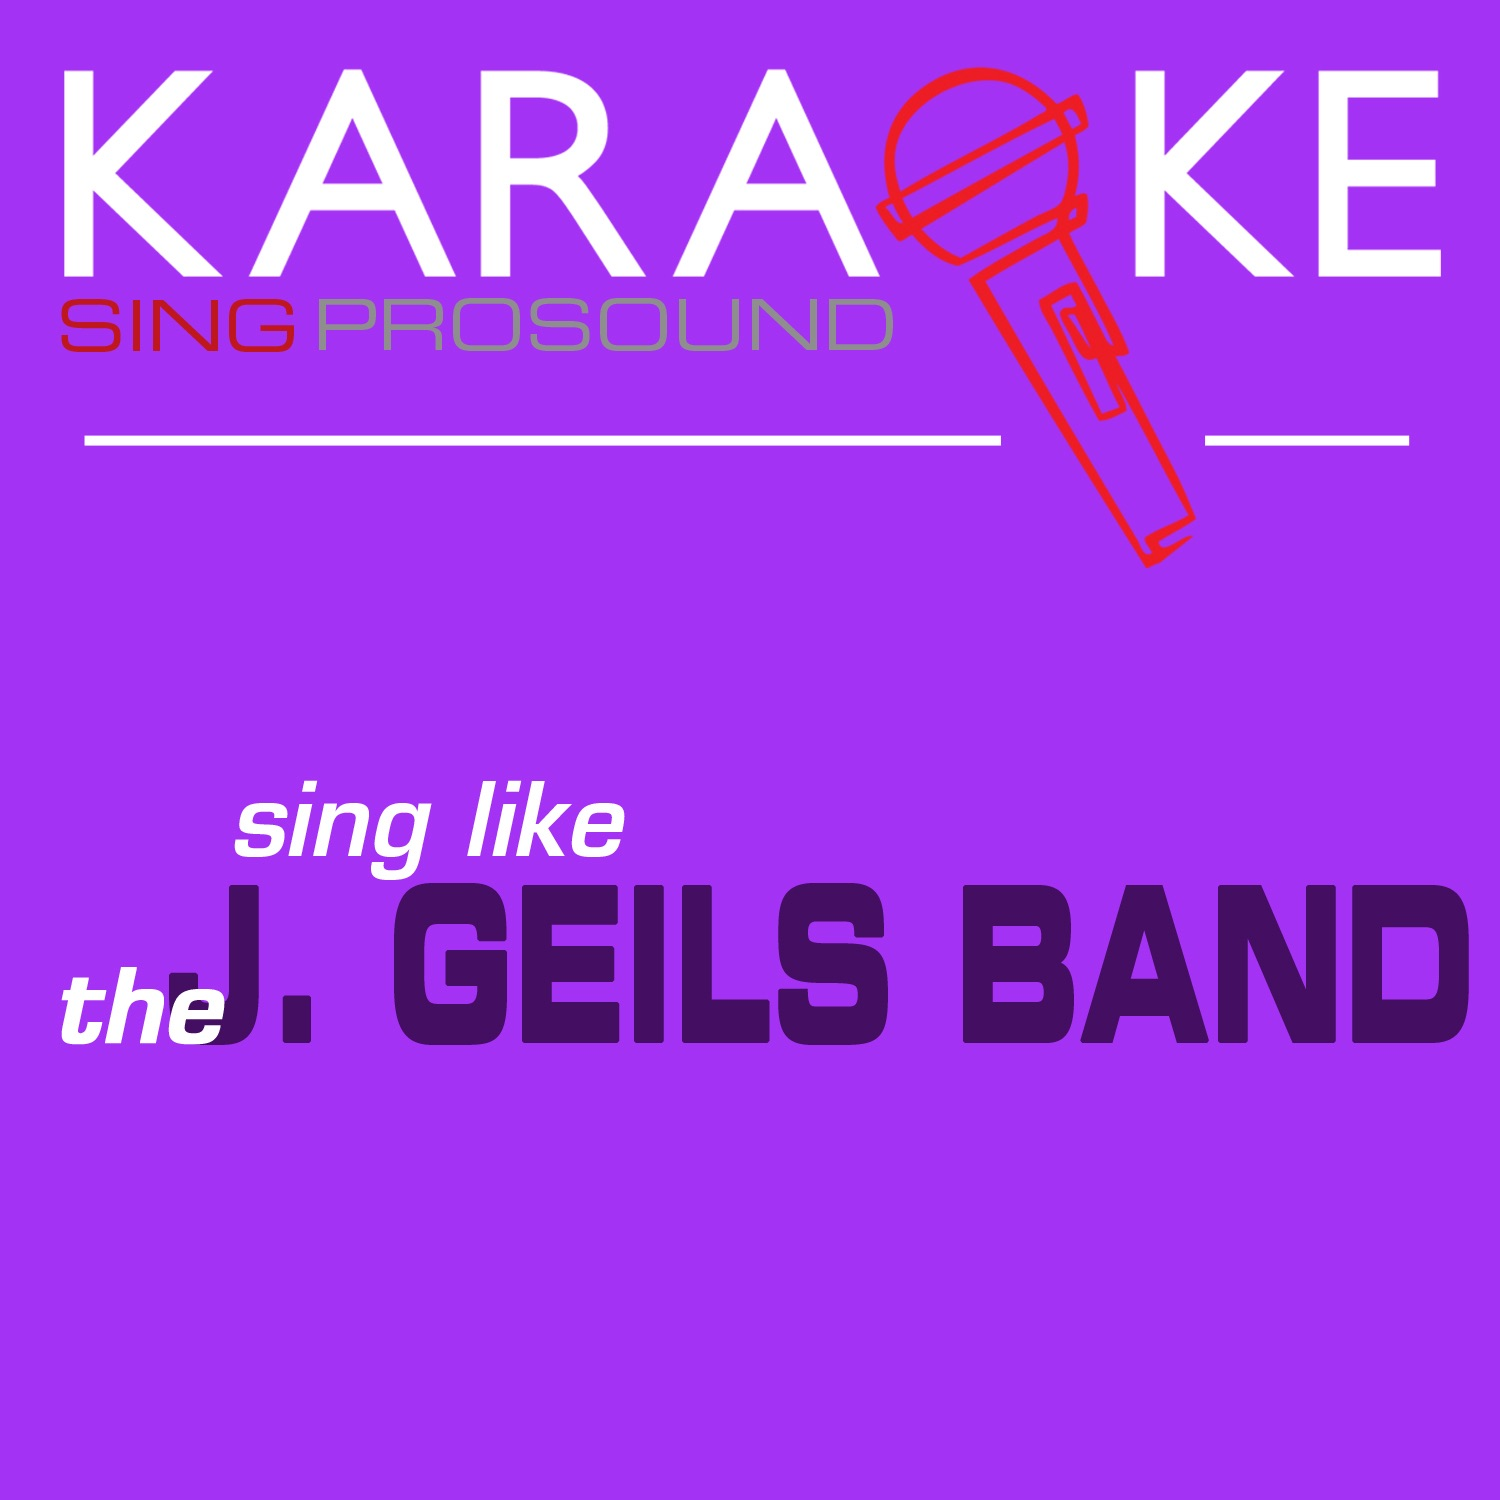 Karaoke in the Style of the J. Geils Band - Single